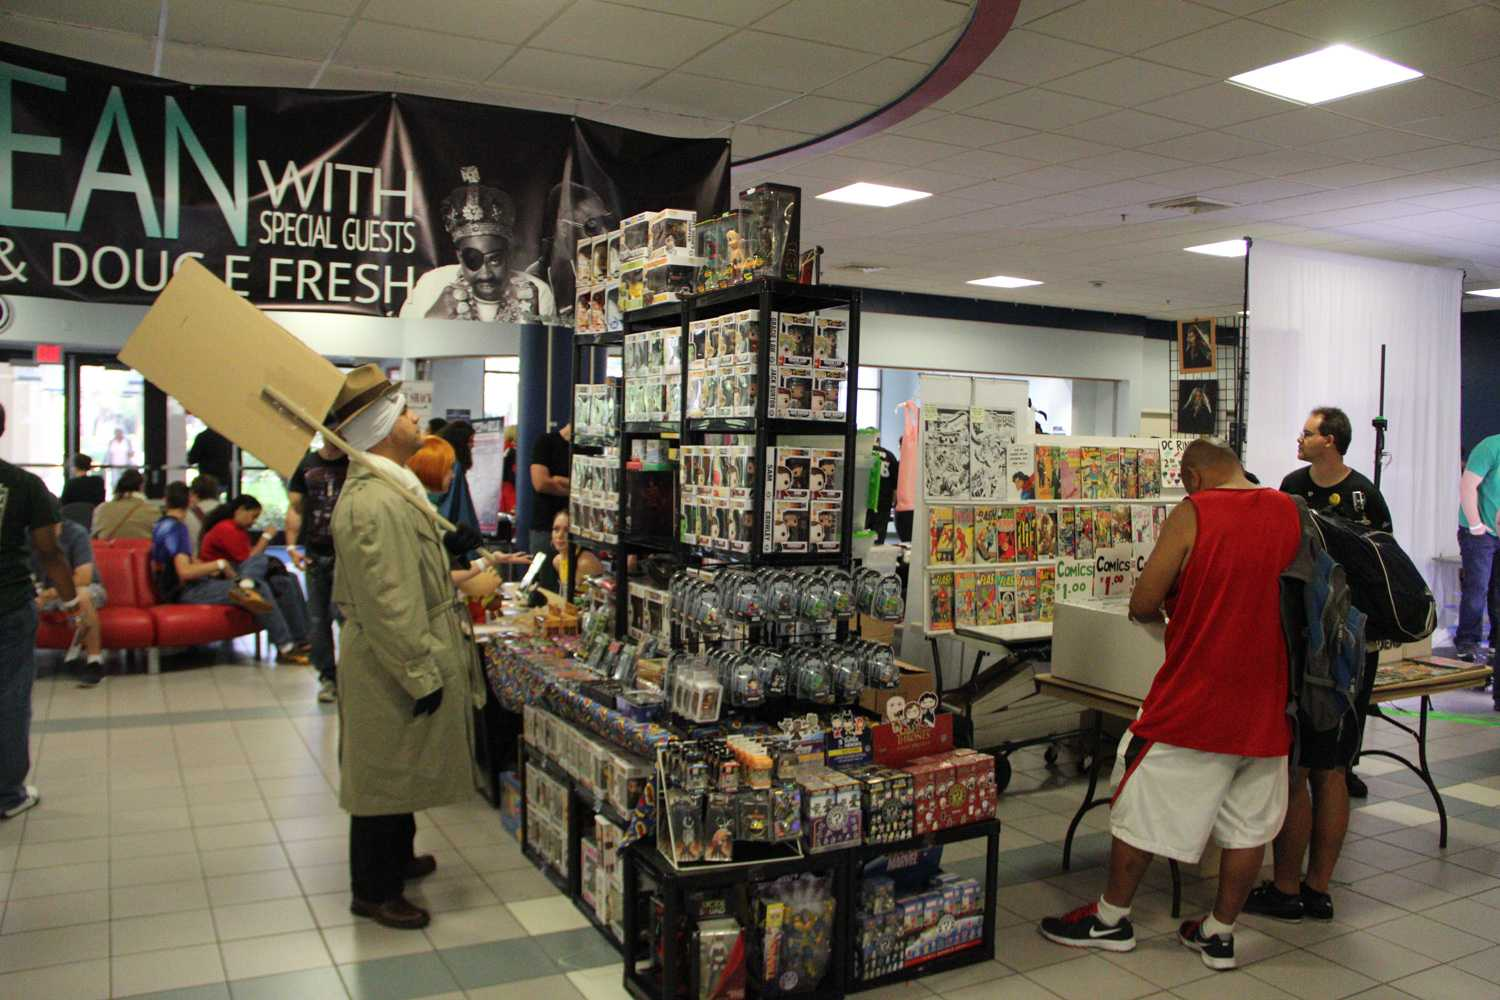 Action figures and collectibles were just as commonplace for sale as 80s and 90s comics.